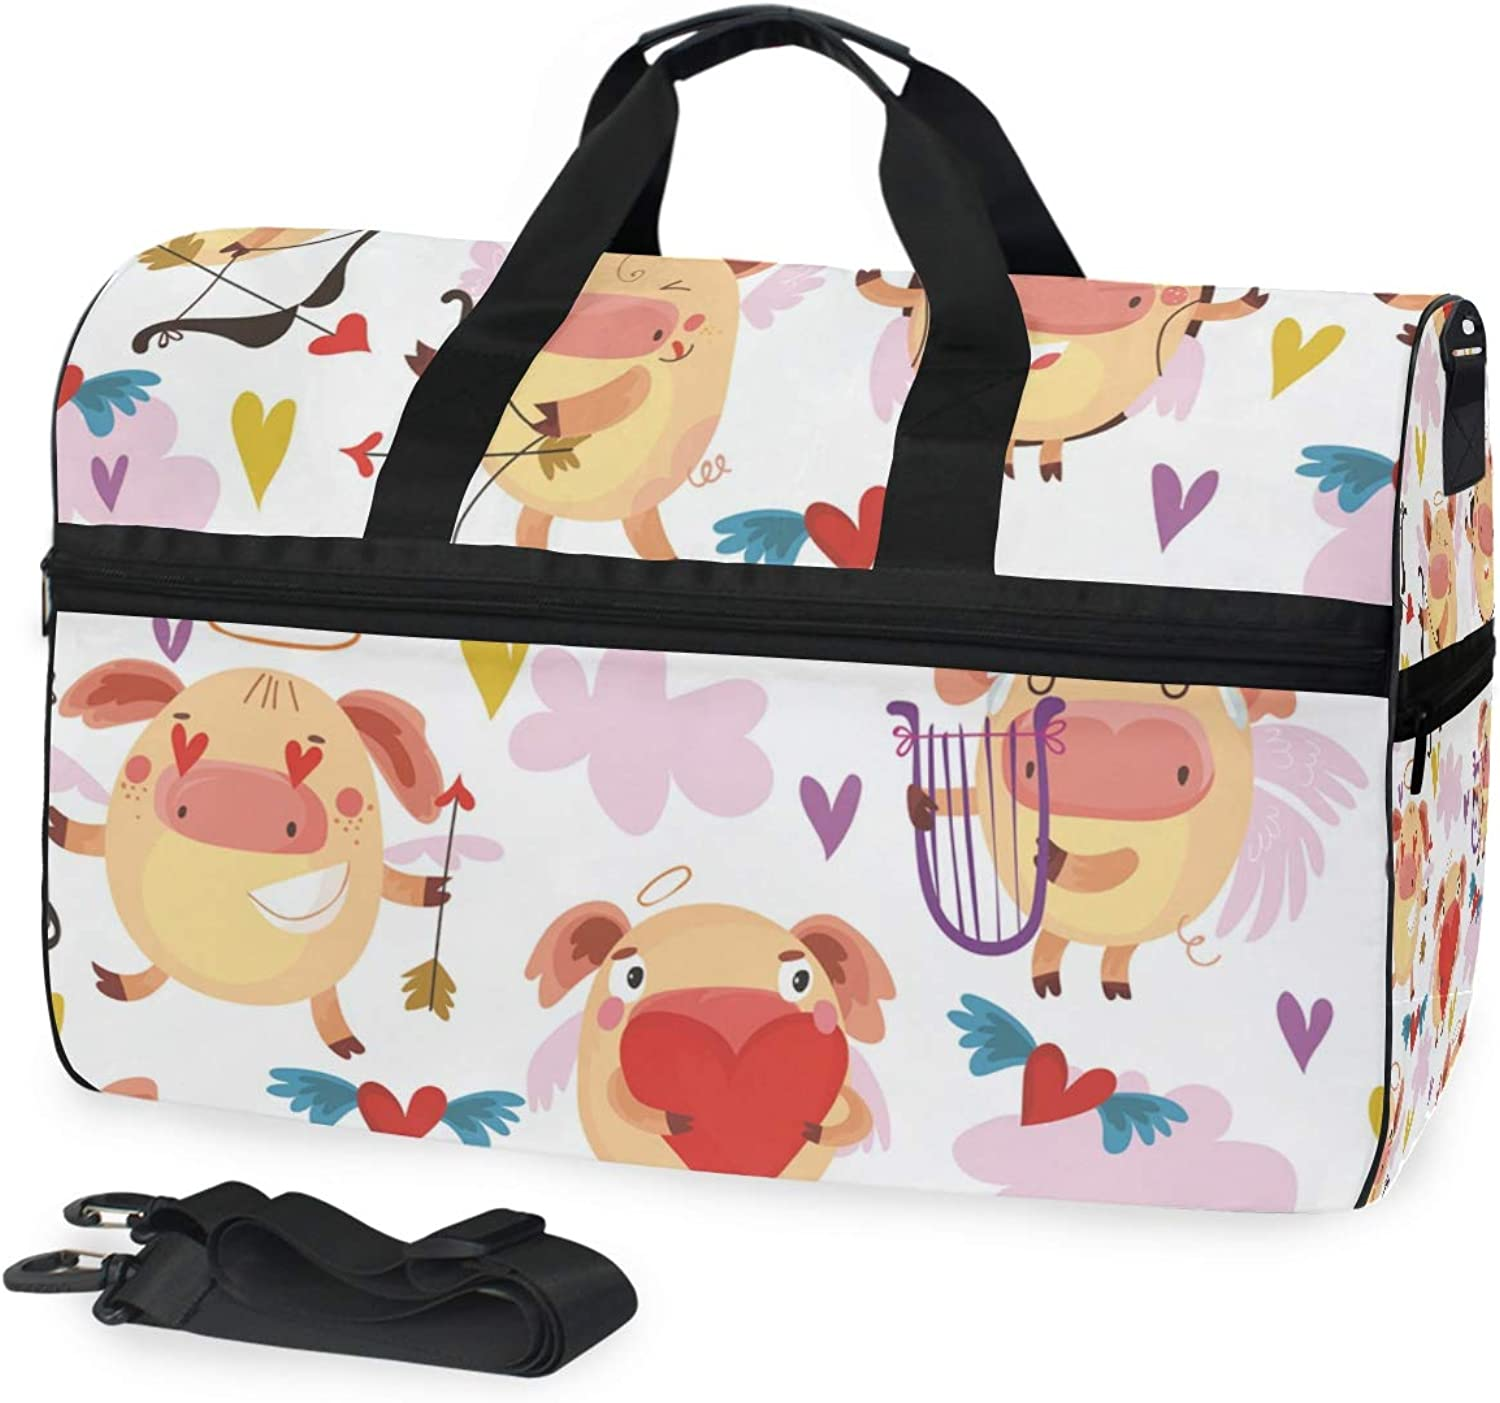 DEZIRO 45L Travel Duffel Bag Cartoon Animal Pig Large Weekender Bag with shoes Compartment